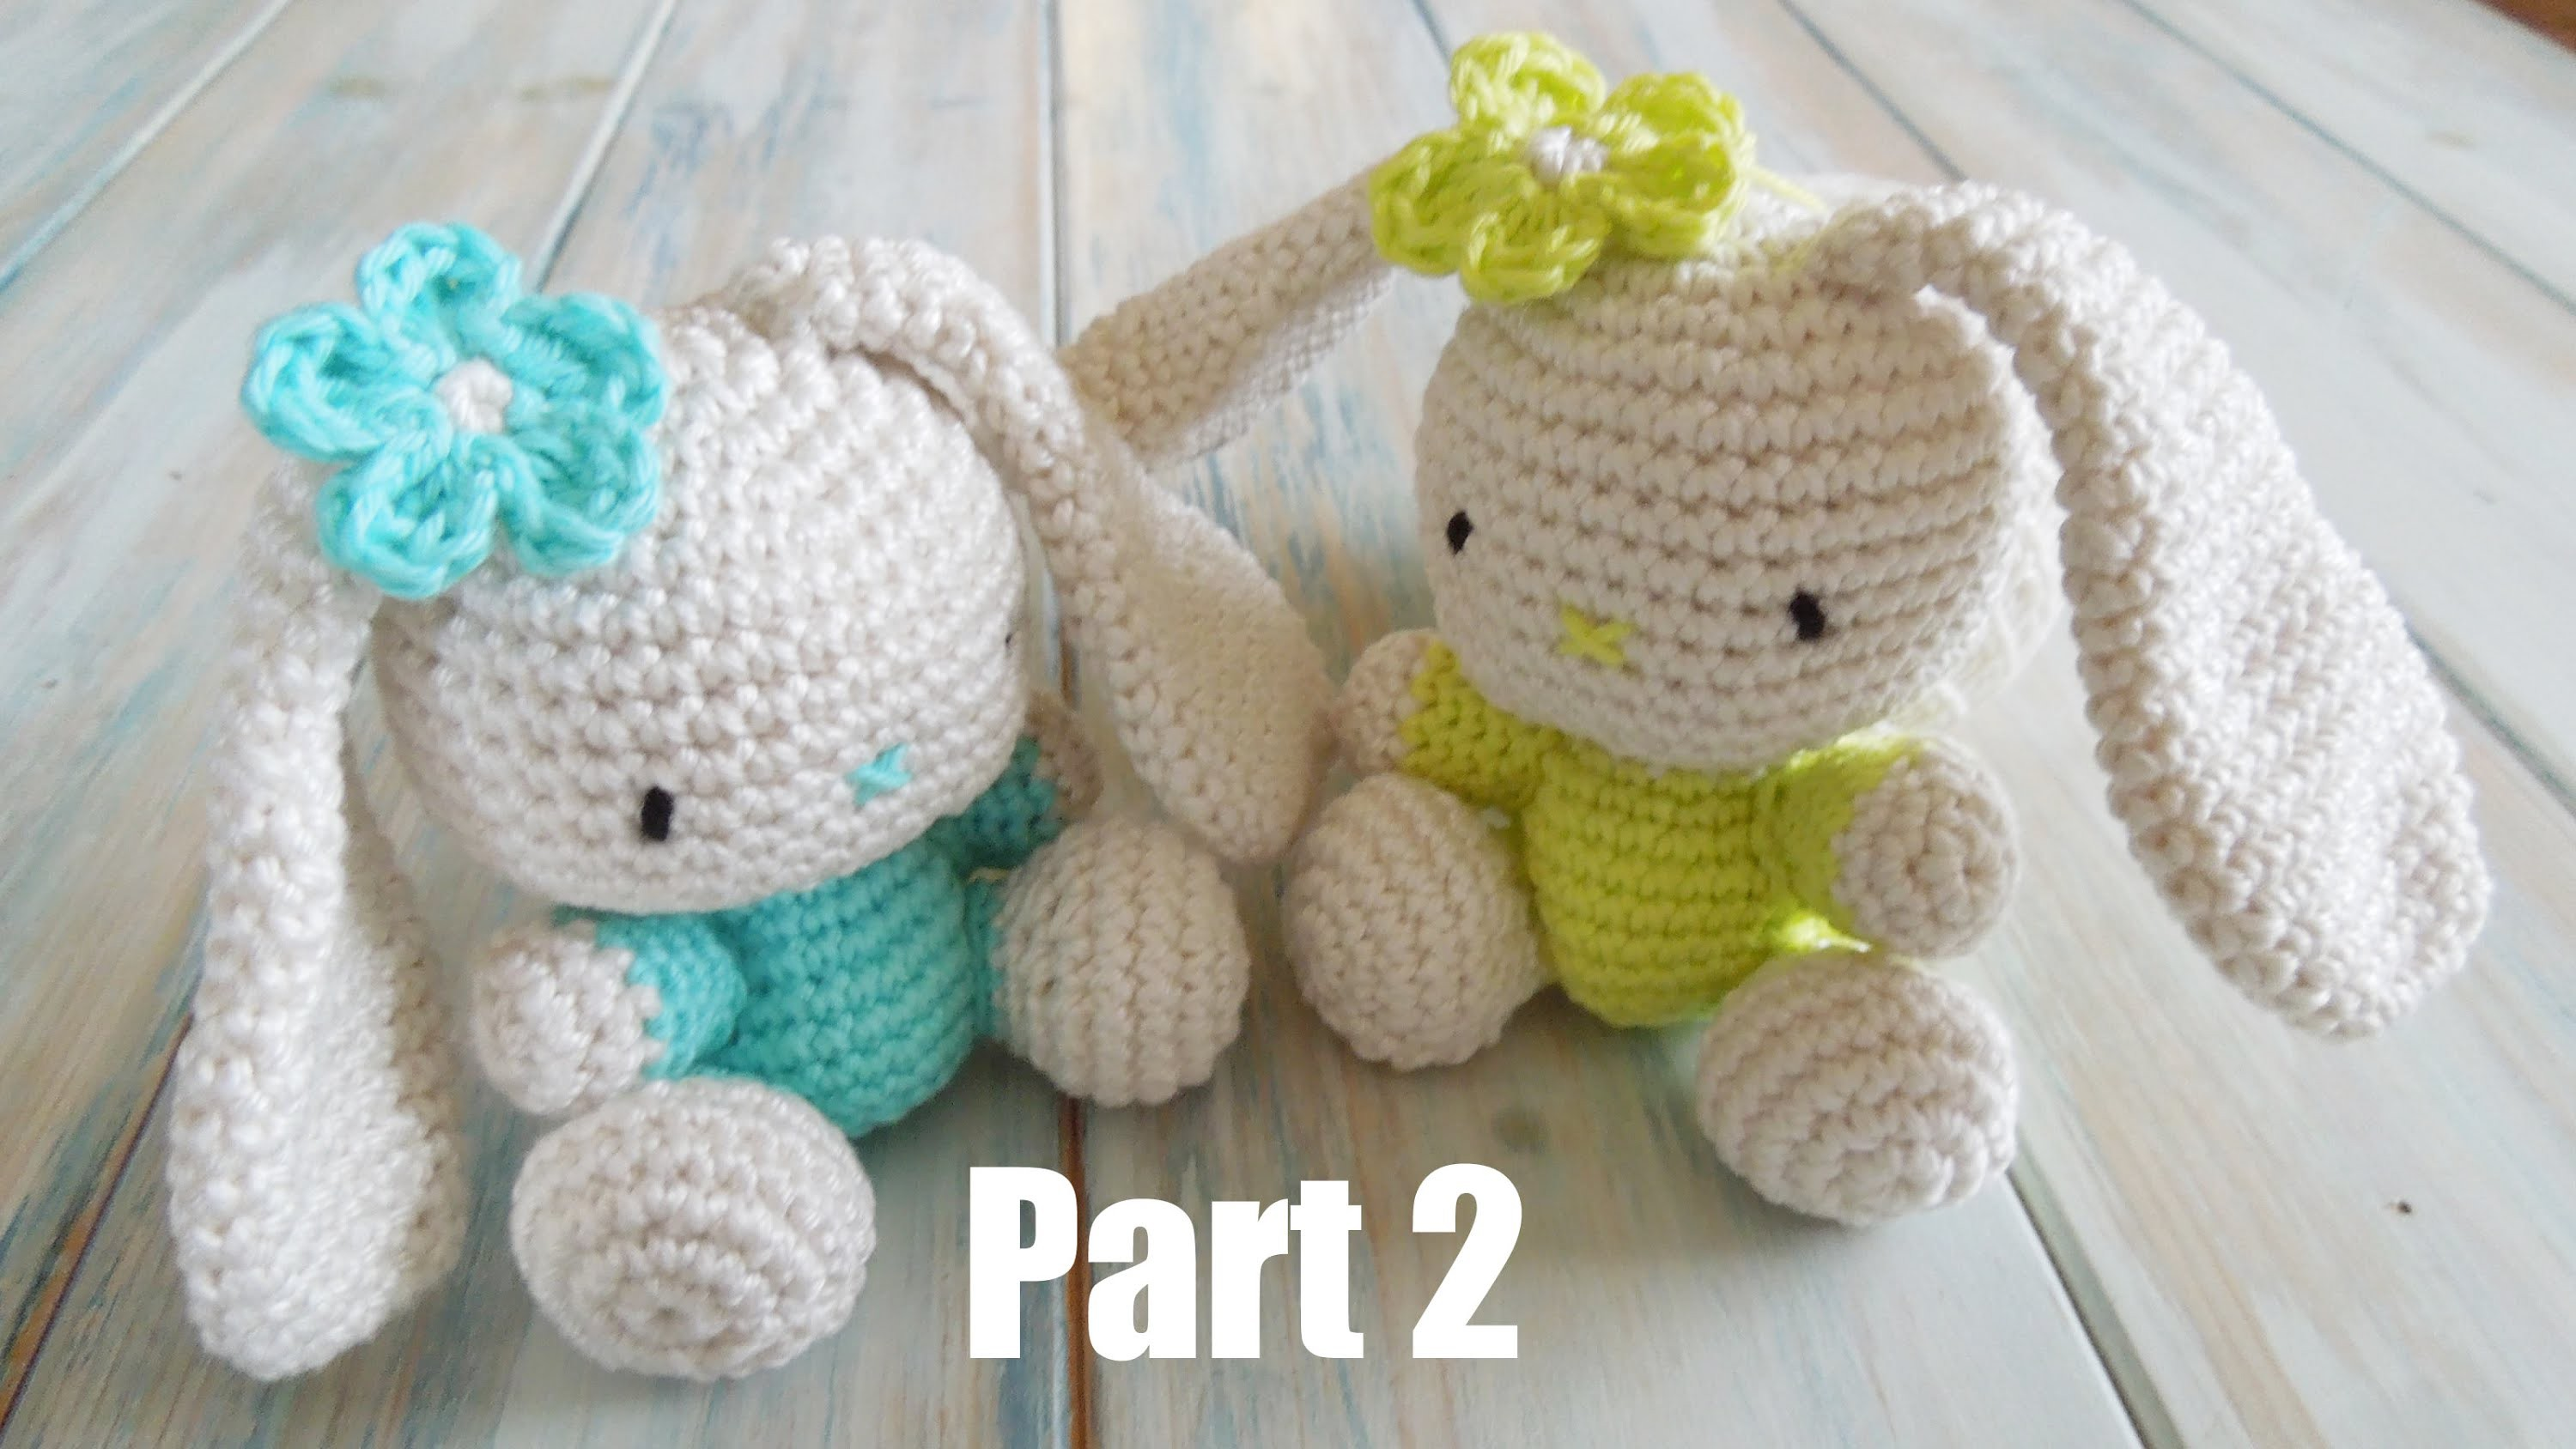 (crochet) Pt2: How To Crochet an Amigurumi Rabbit - Yarn Scrap Friday